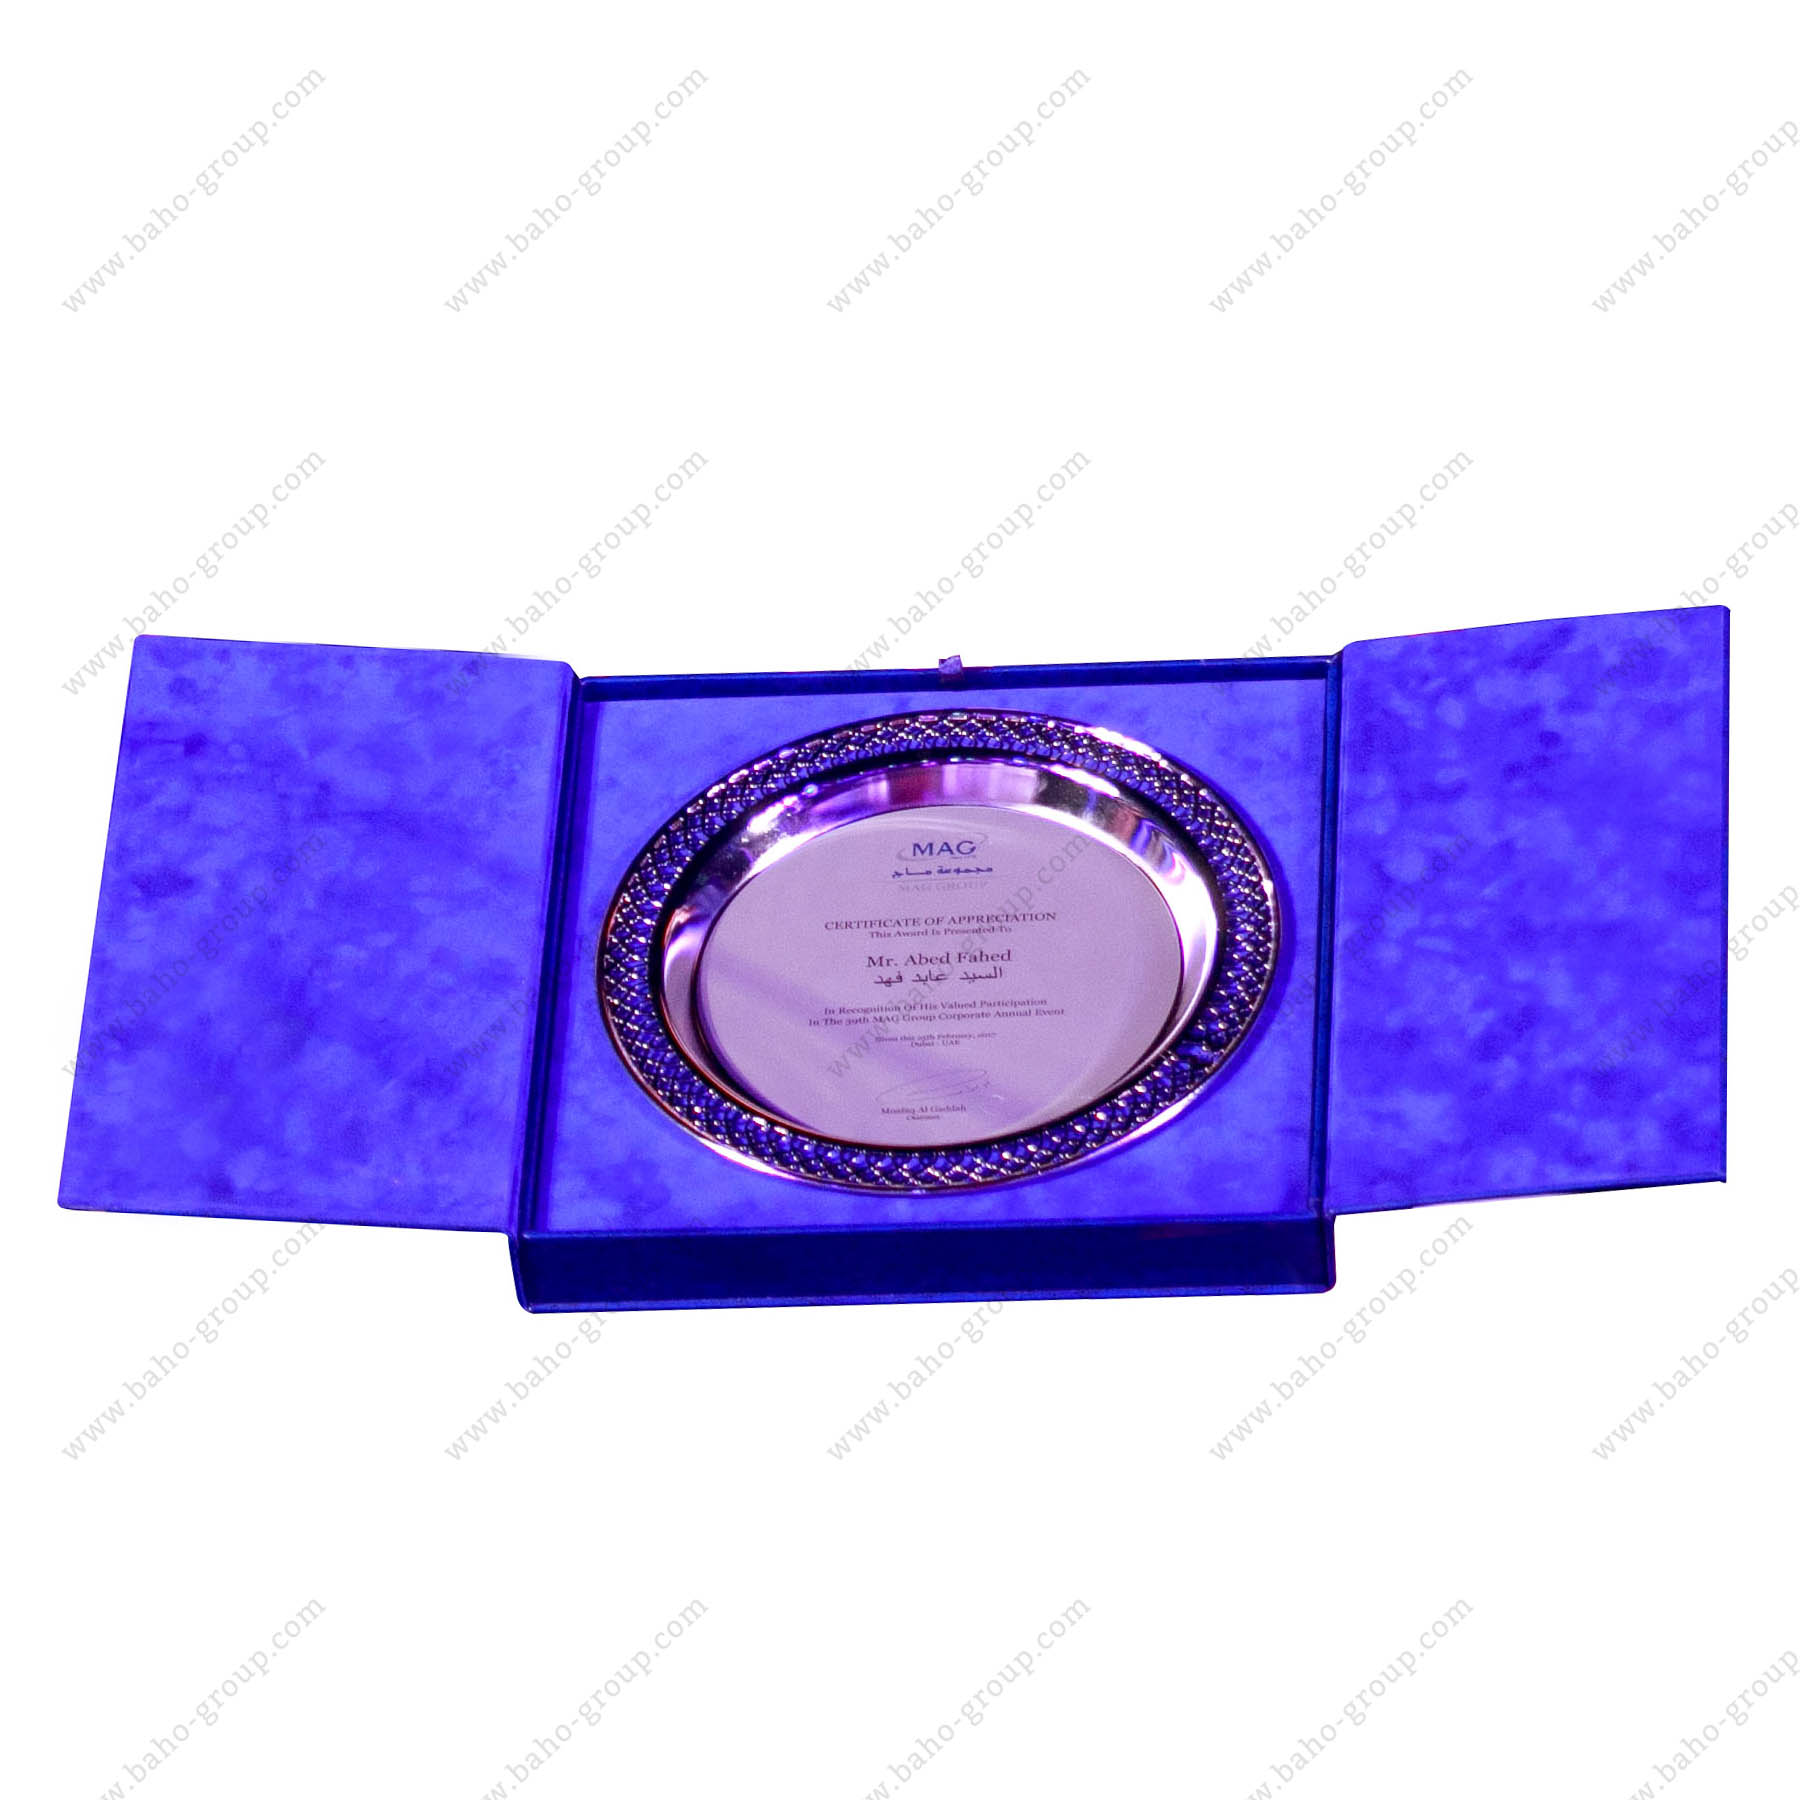 GROUP MAG ROUND PLATE METAL PLAQUE WITH PU LEATHER BOX